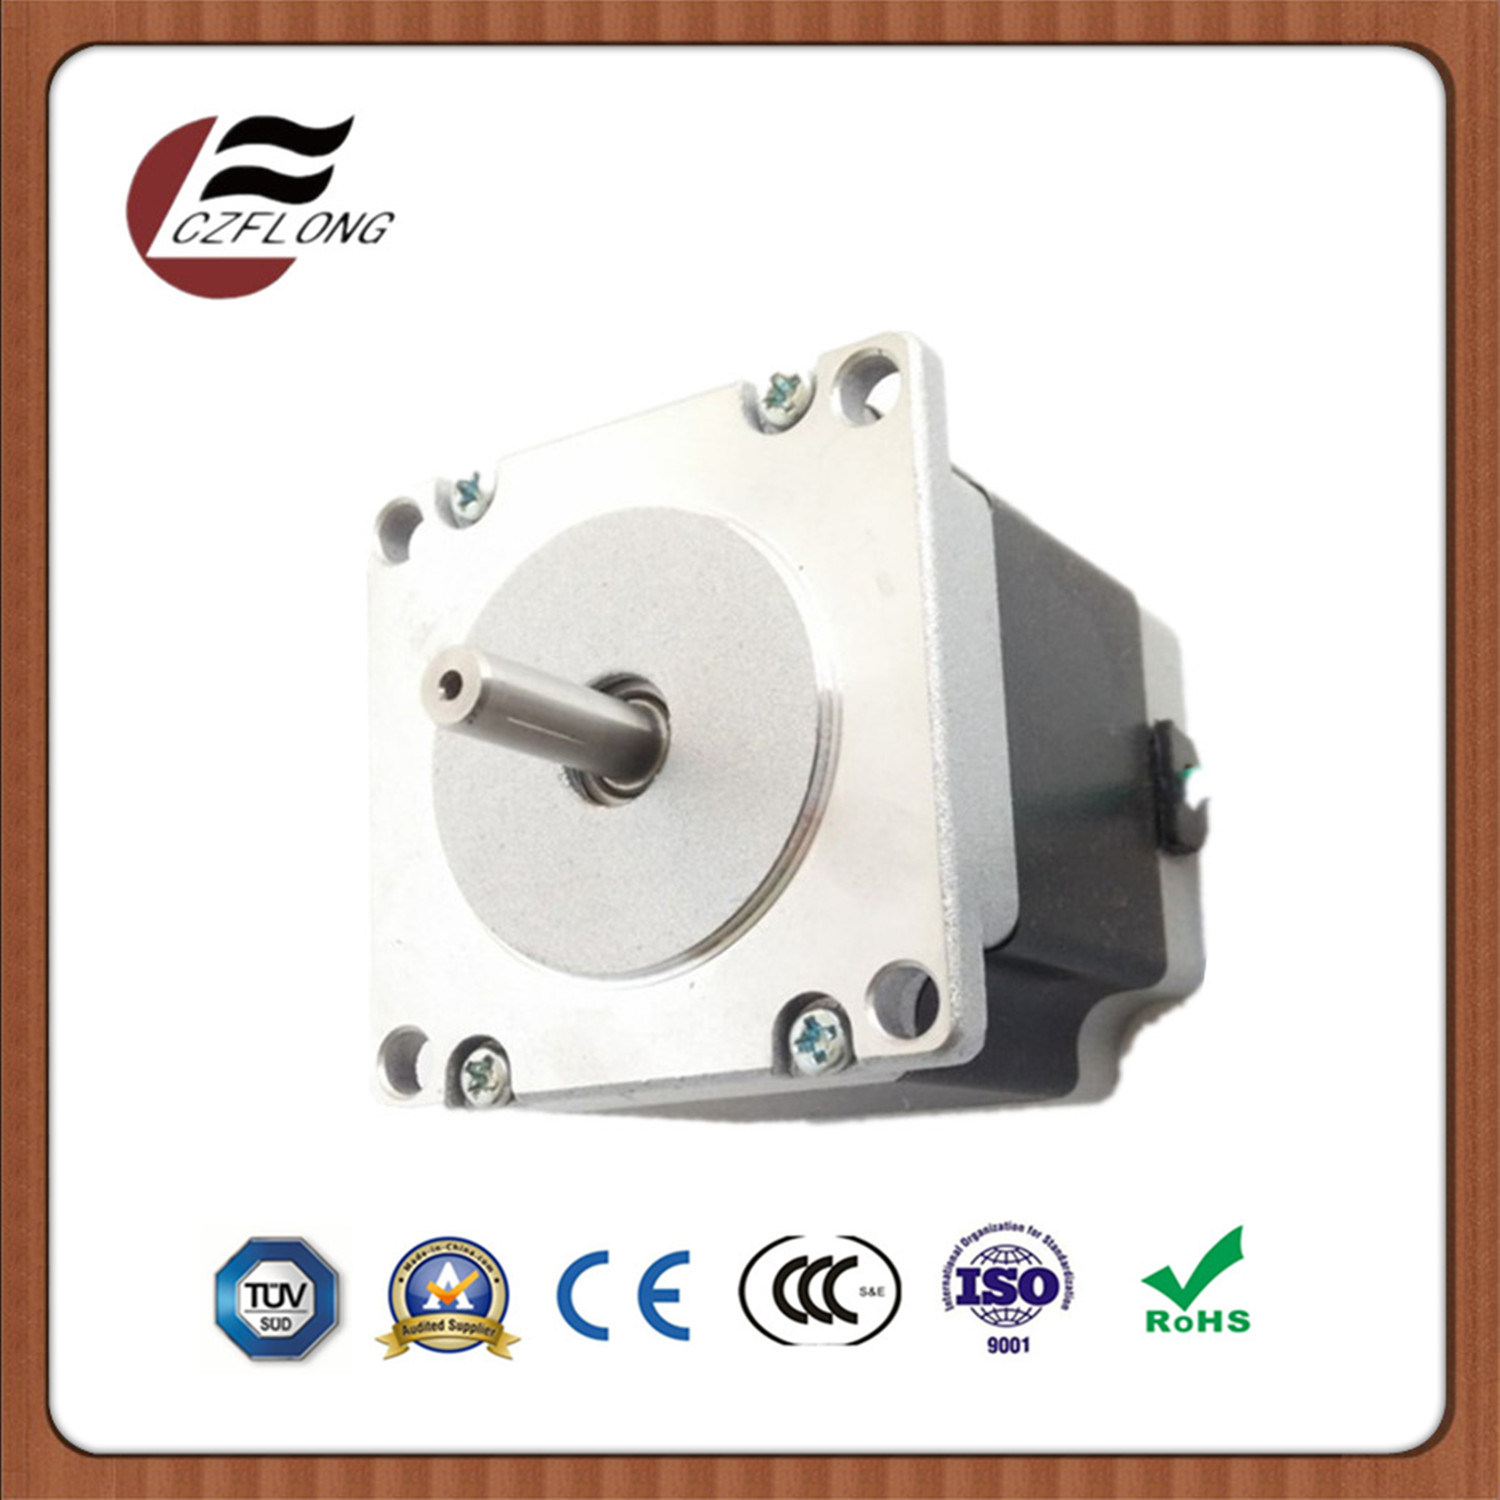 1.8 Deg 2 Phase Stepper Motor for CNC Wide Application